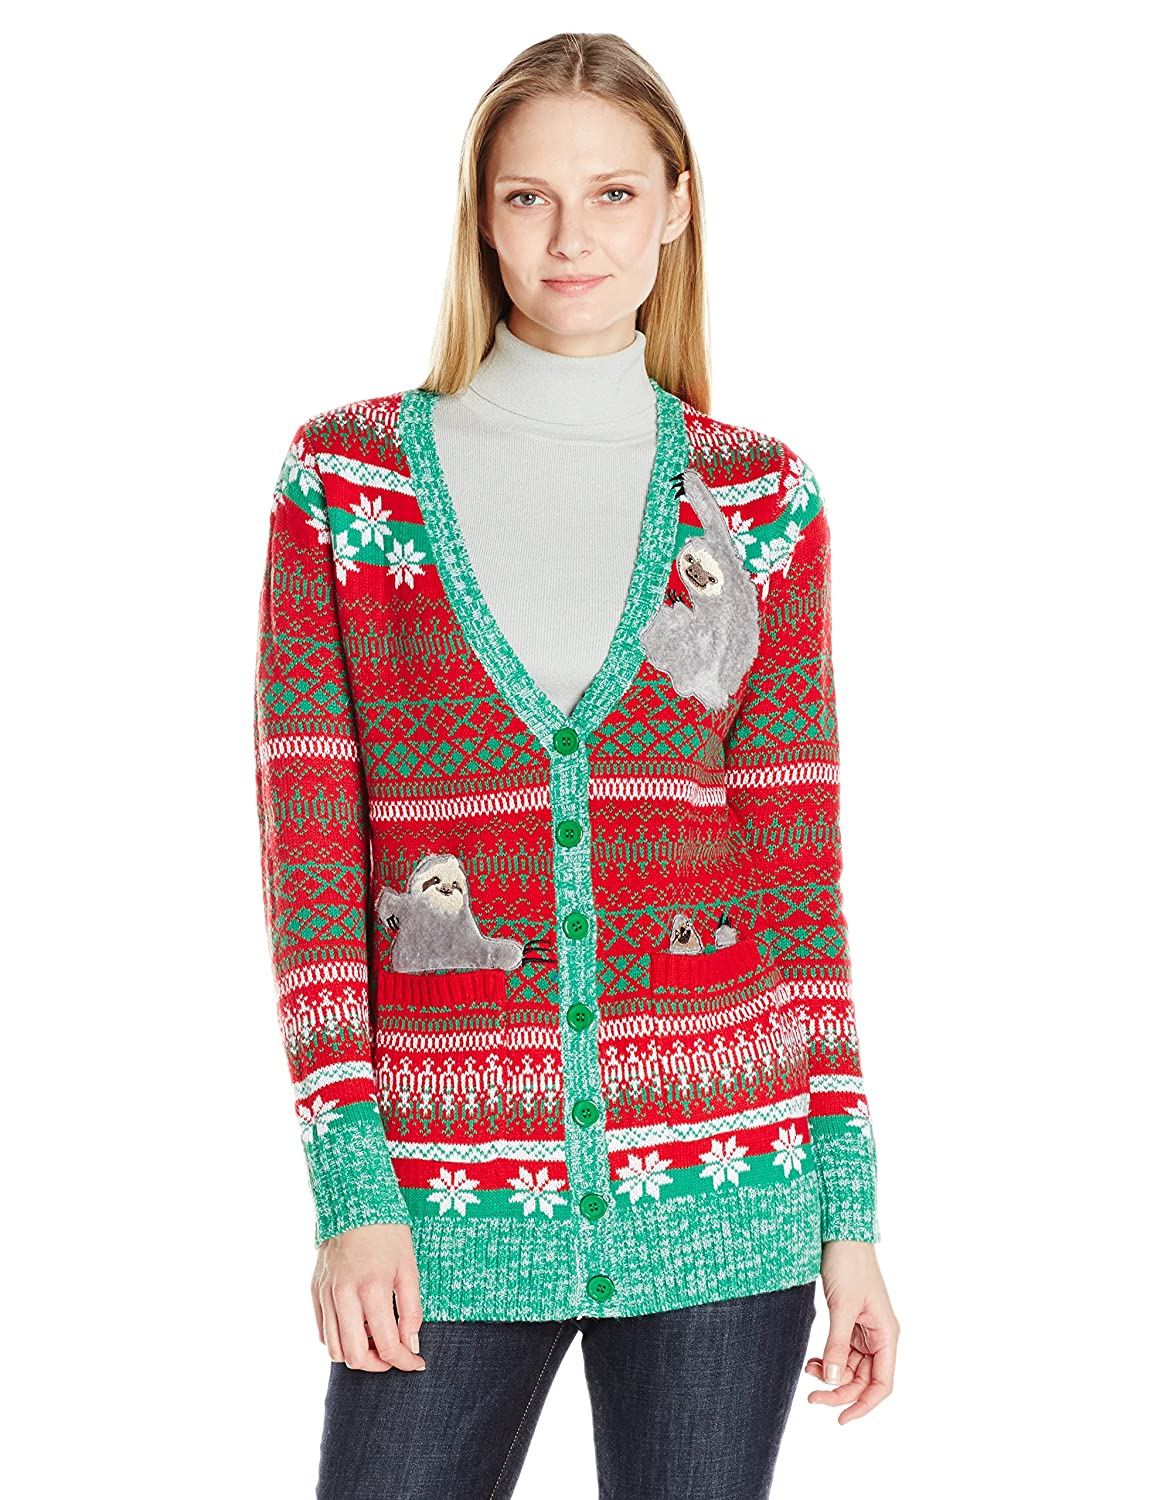 blizzard bay womens sloth cardigan ugly christmas sweater at amazon womens clothing store - Ugly Christmas Sweater Amazon